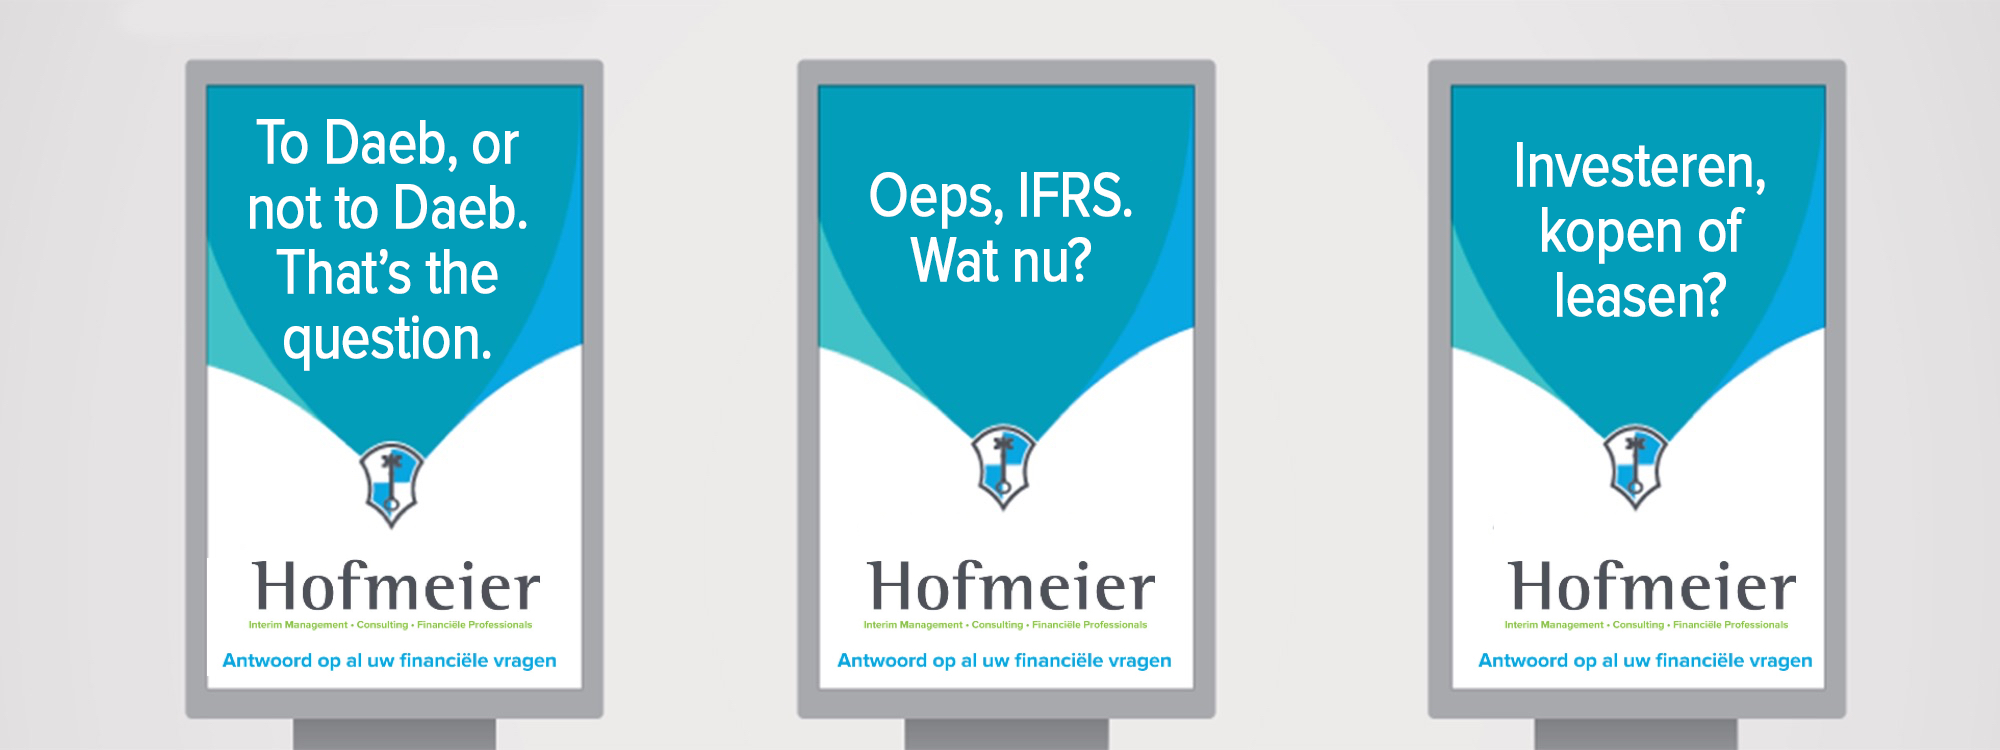 Hofmeier-Billboard